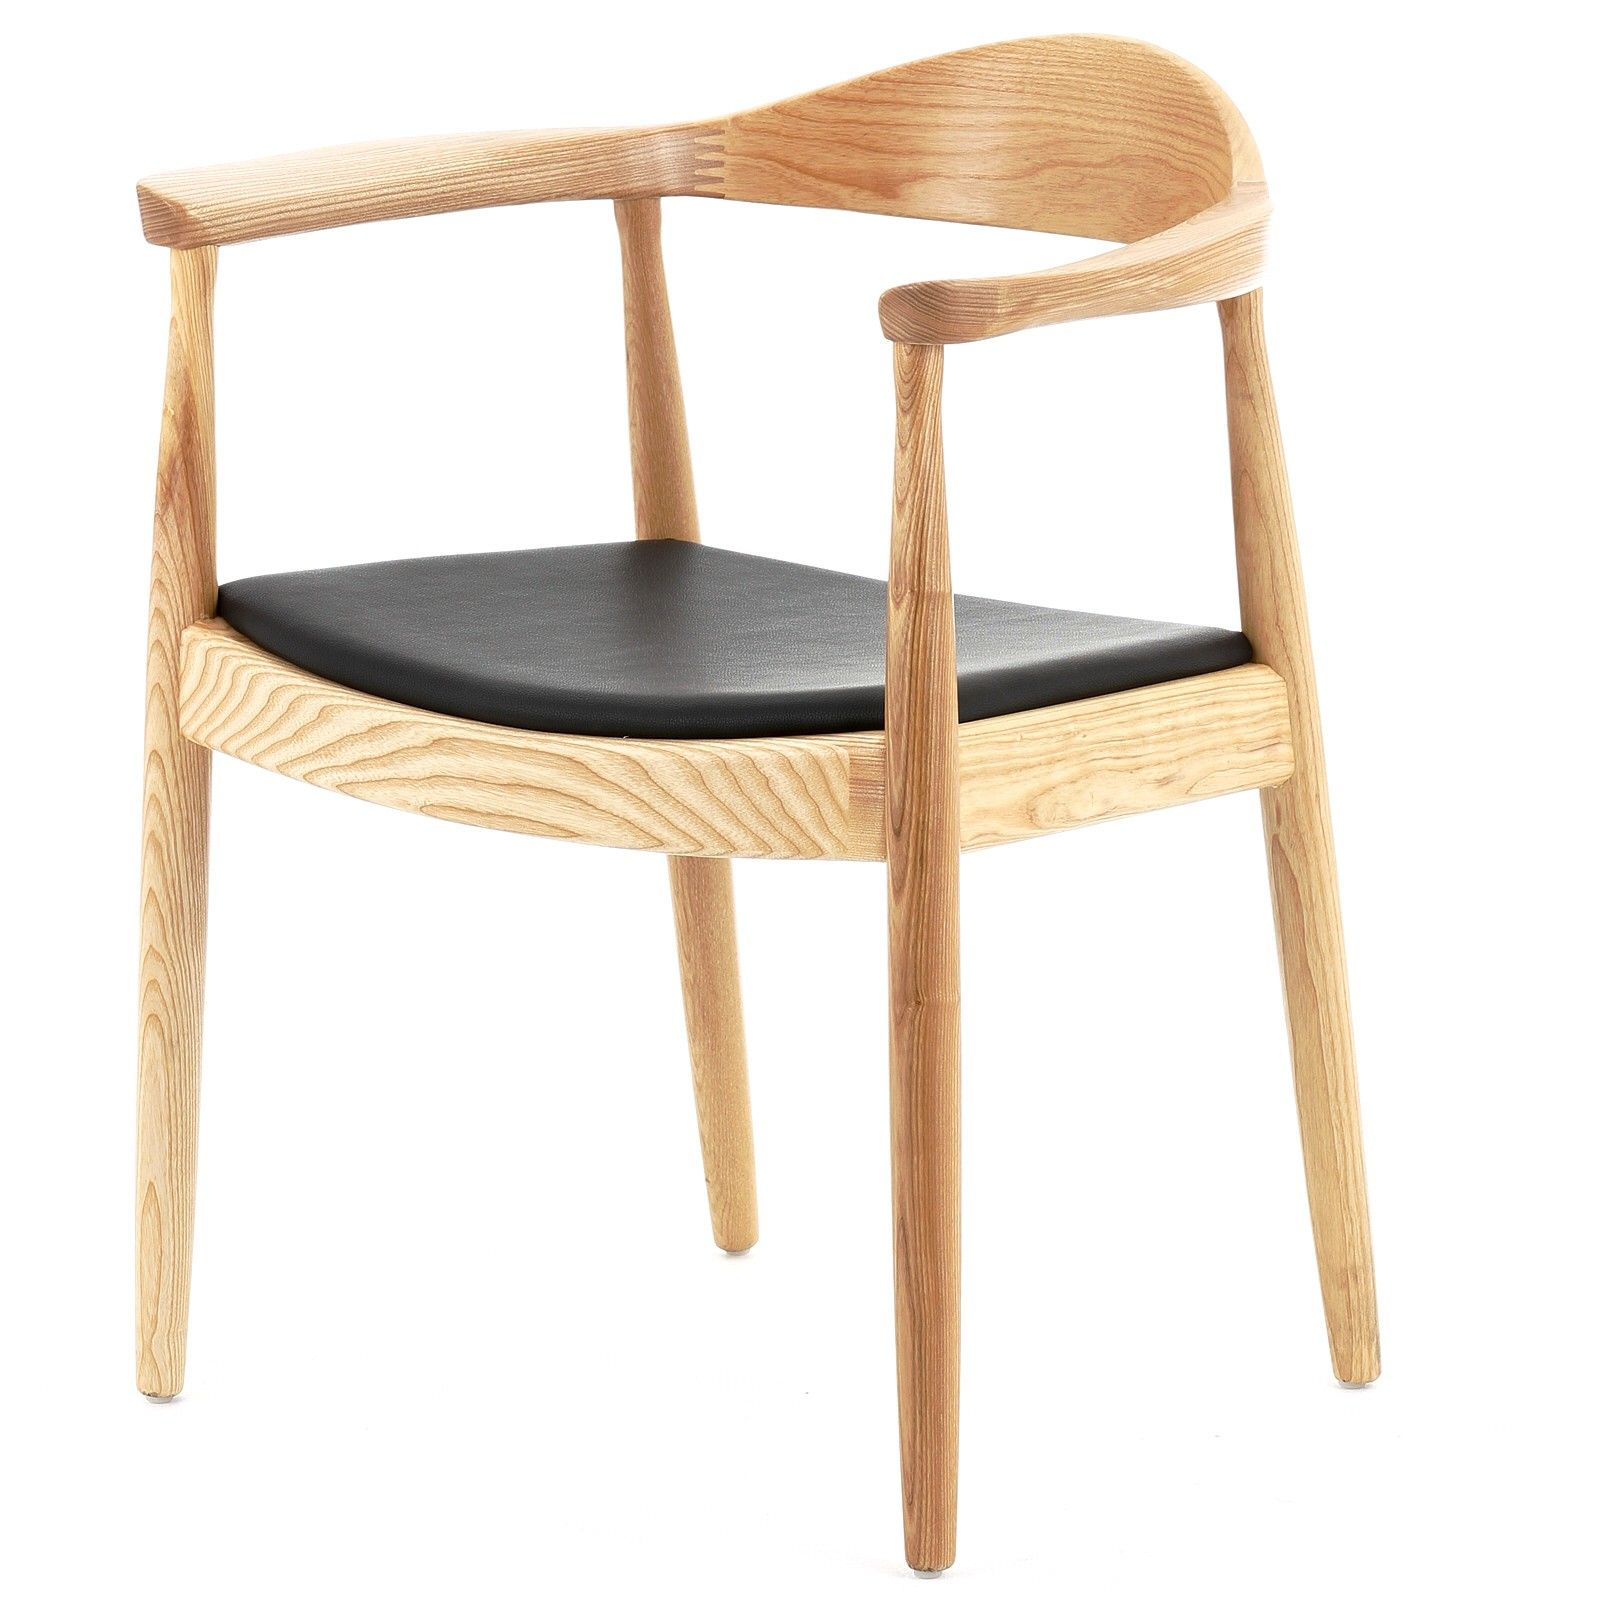 s chair replica best office for shoulder pain hans wegner round ash dining chairs nick